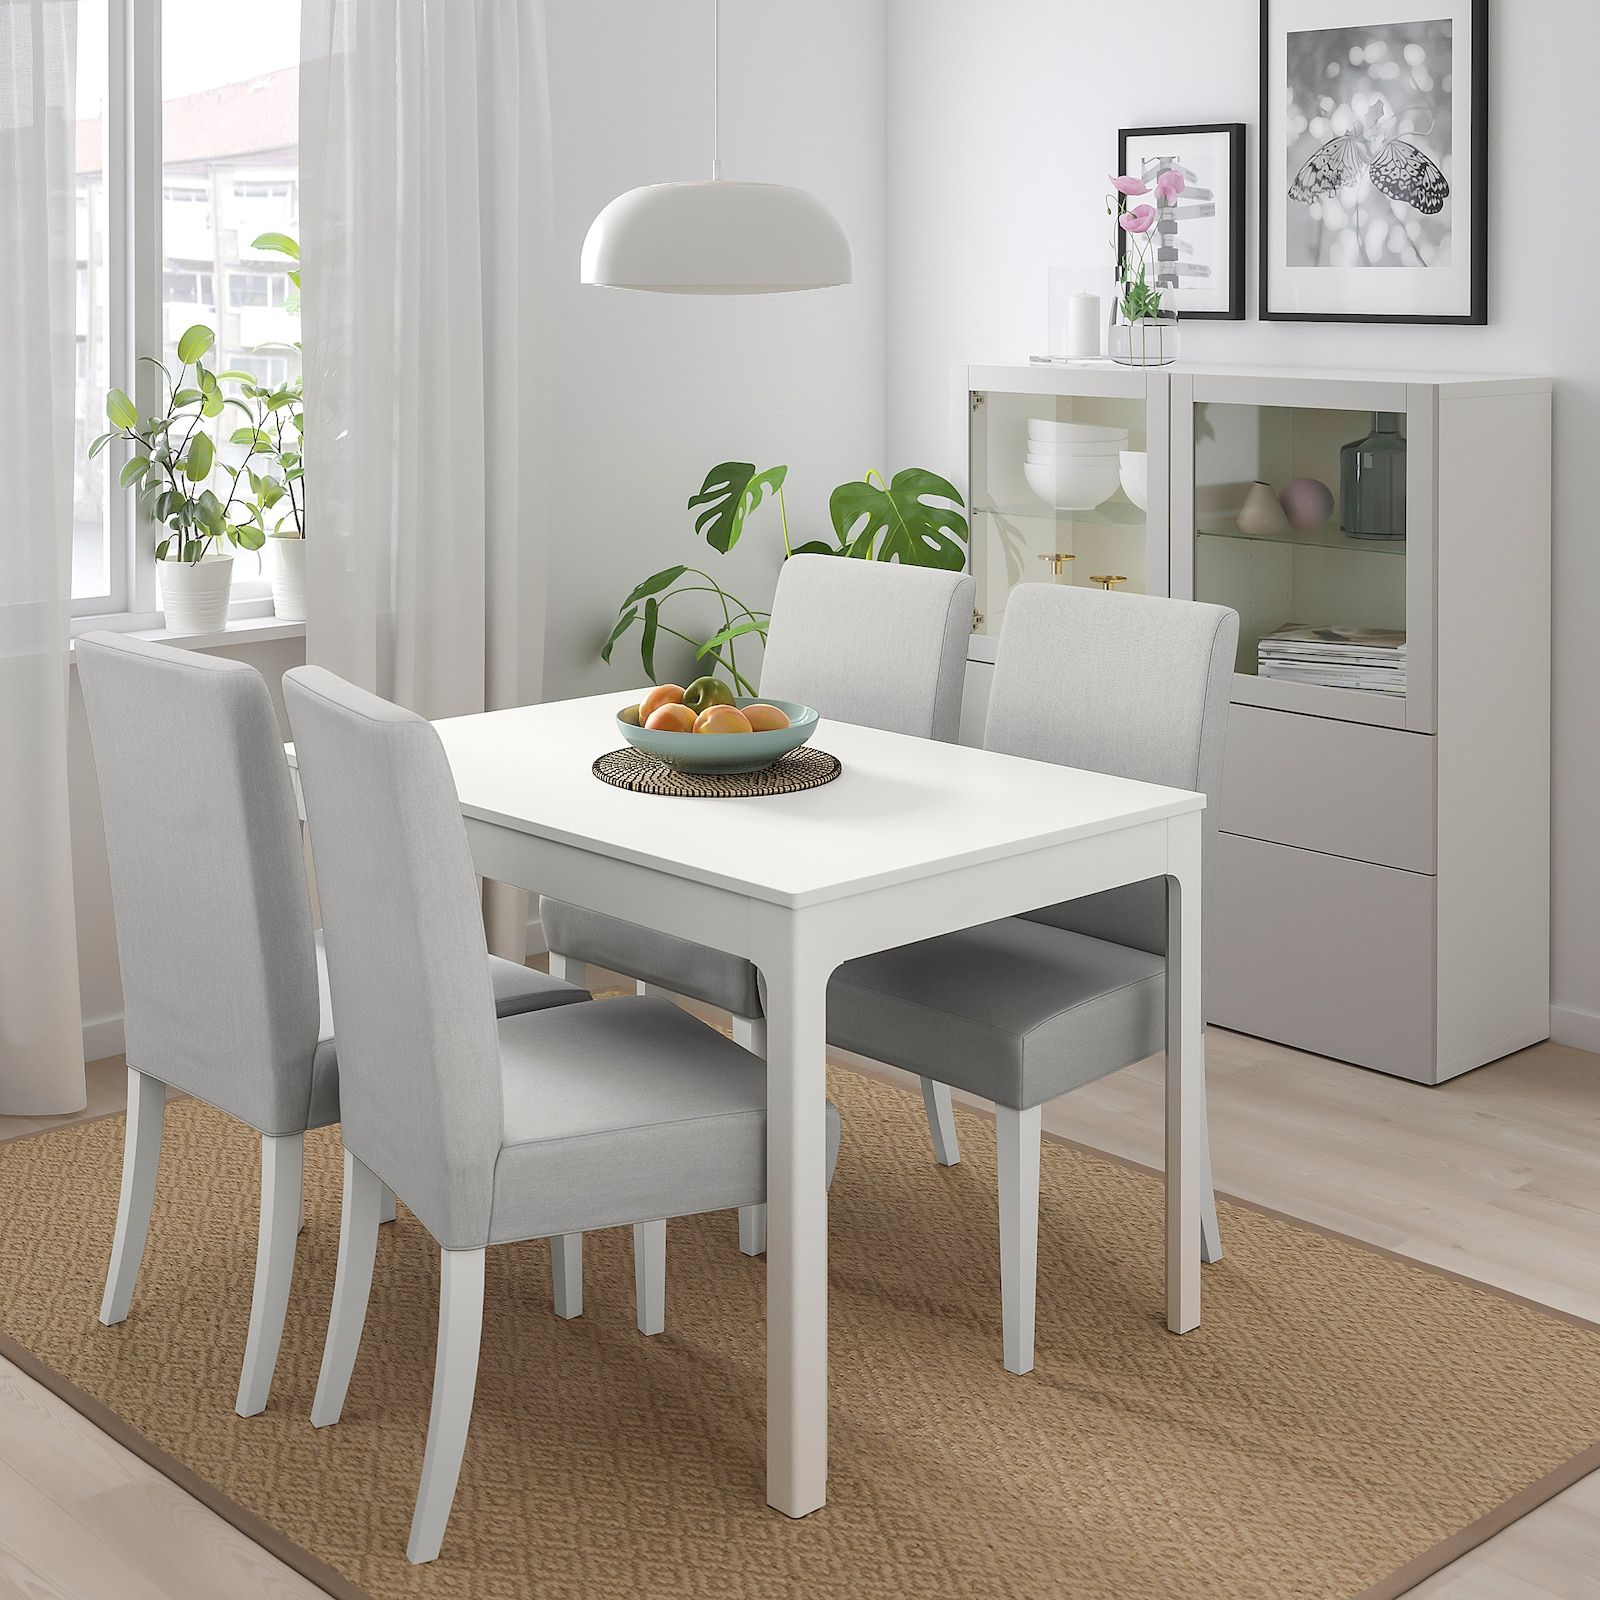 Download Wallpaper White Or Grey Kitchen Table